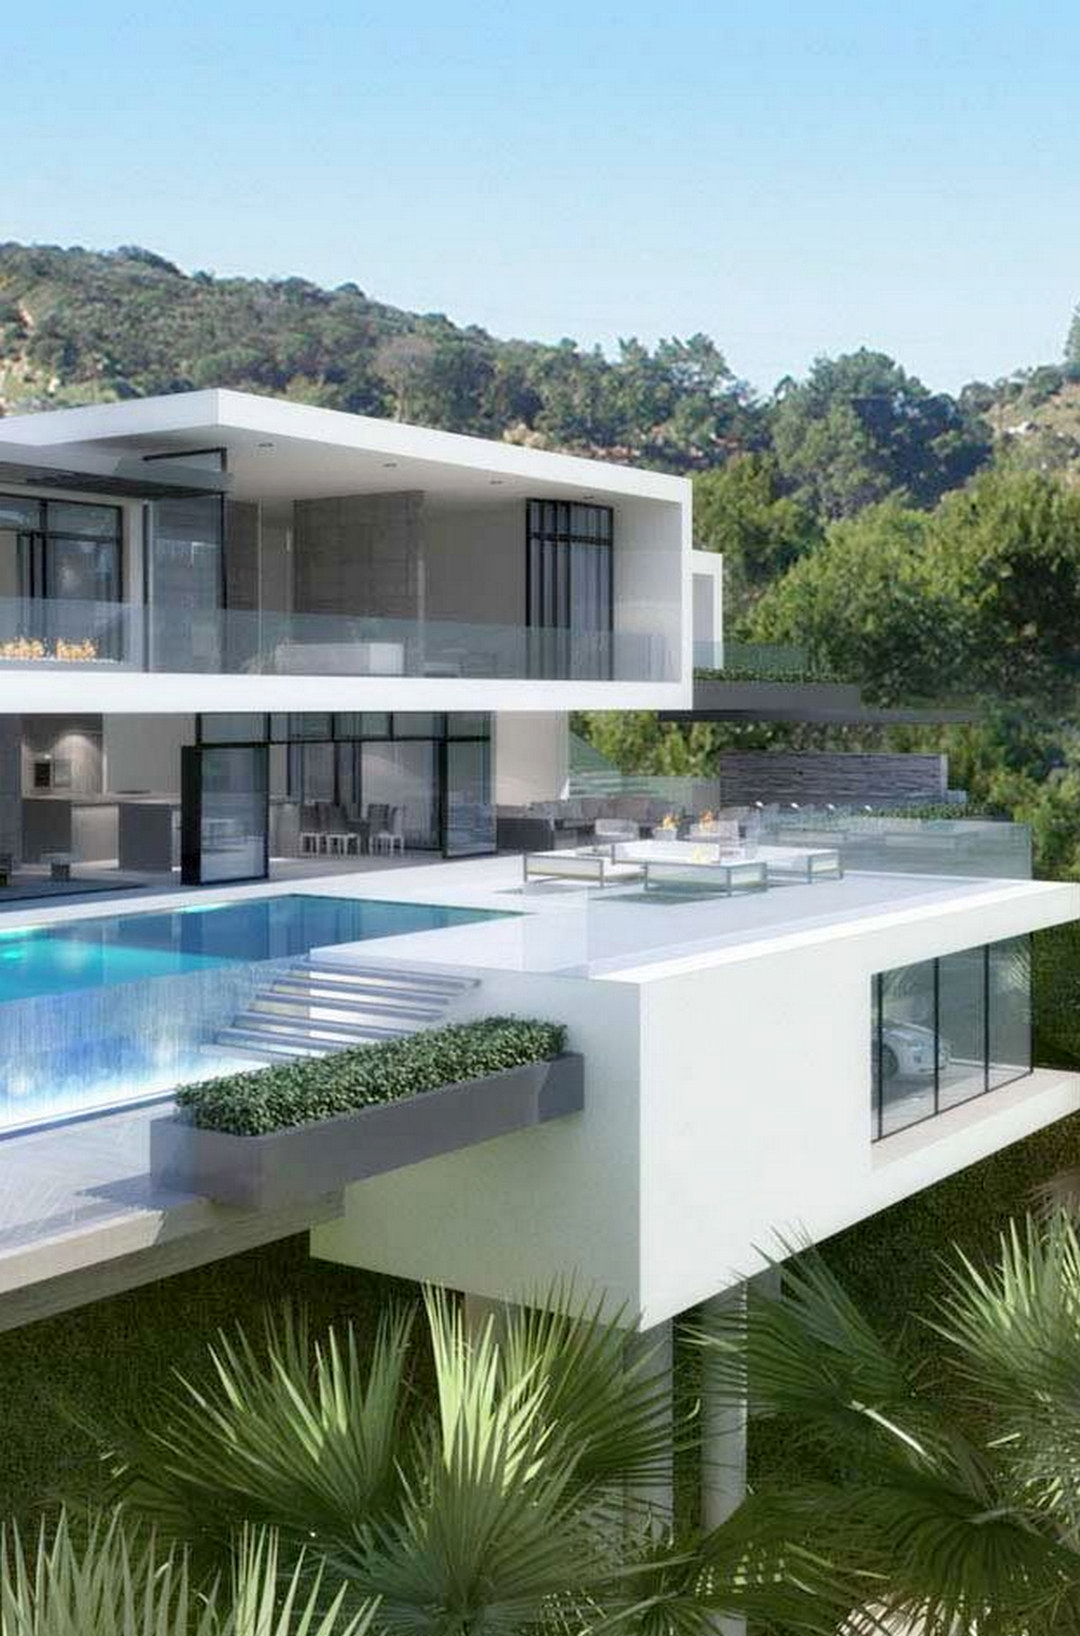 incredible house design inspirations https futuristarchitecture also pin by cpuneronet on cars pinterest architecture rh